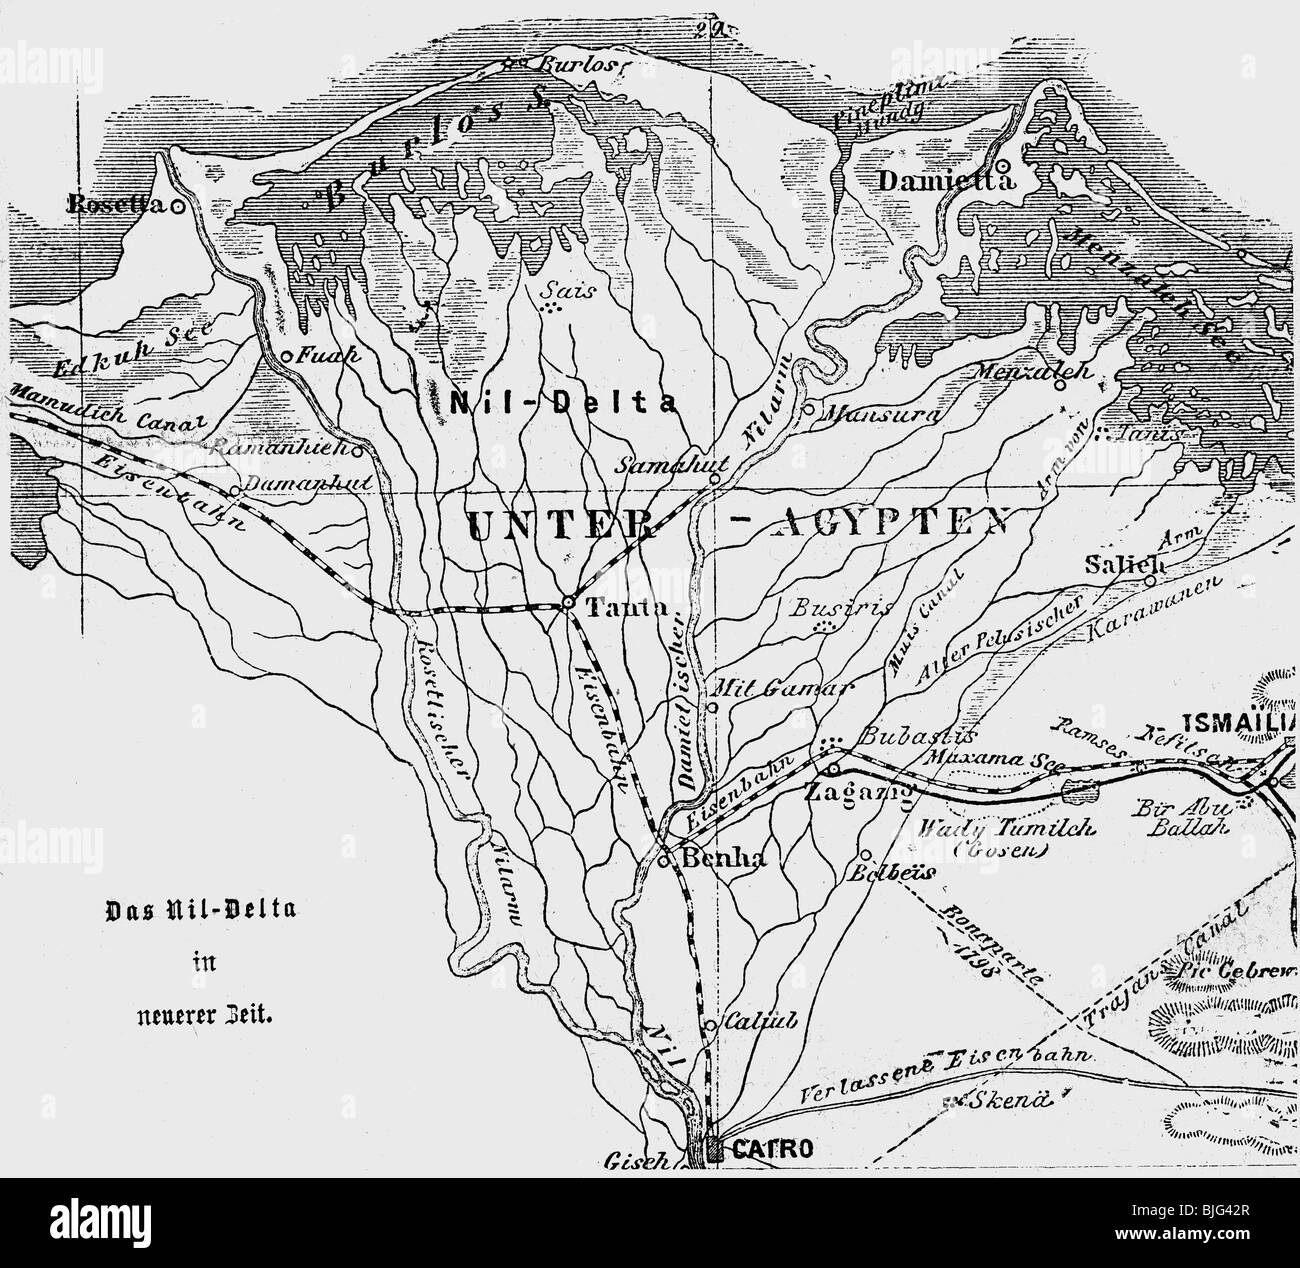 Cartography Maps North Africa Map Of The Nile Delta - Map of egypt delta